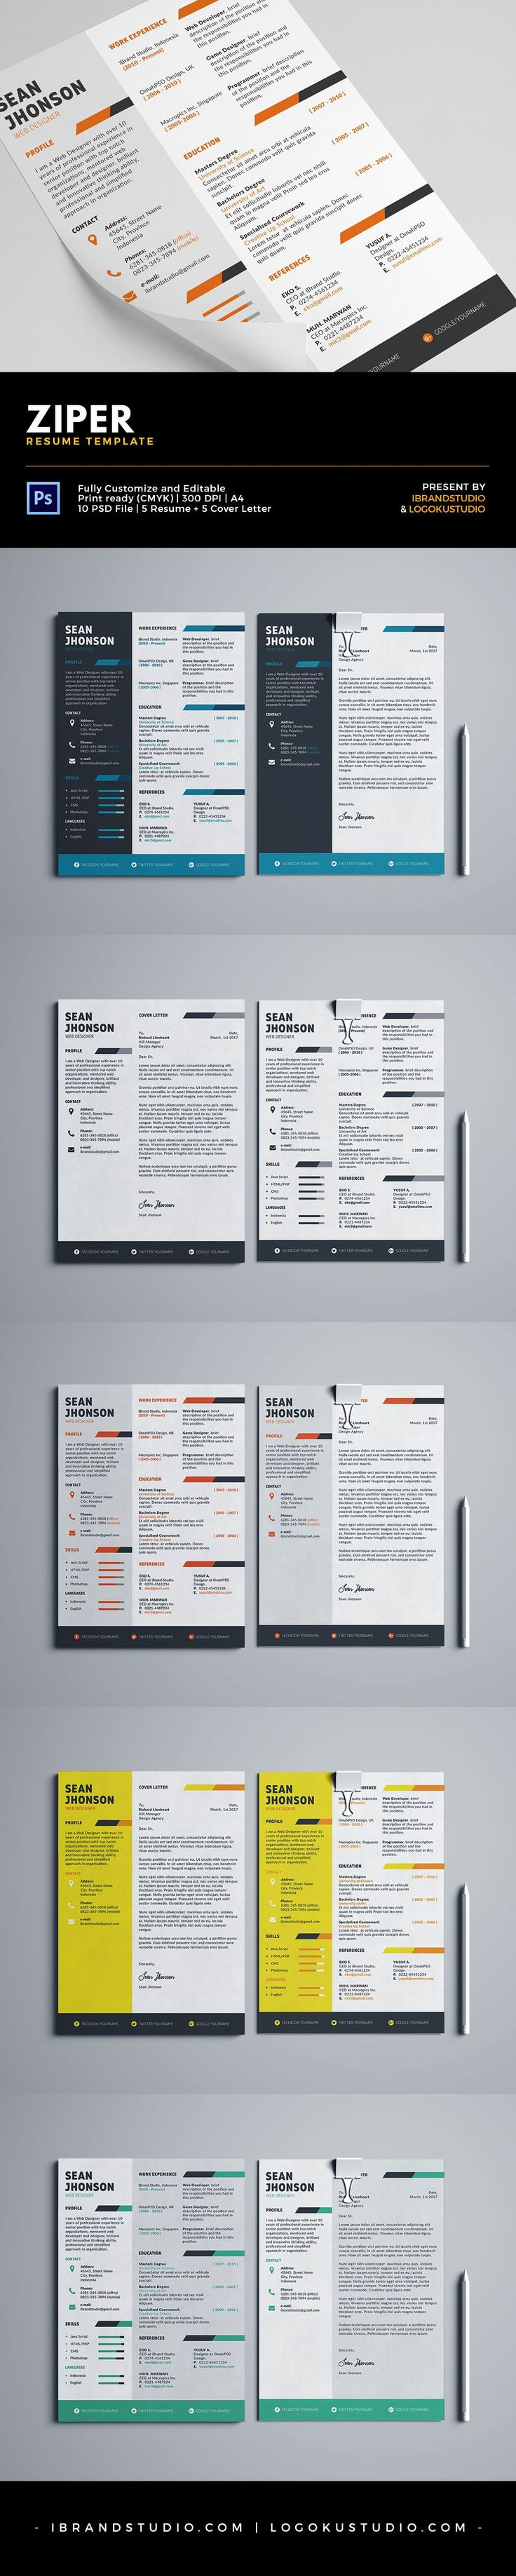 making resume format%0A Free Ziper Resume Template and Cover Letter    Styles  PSD